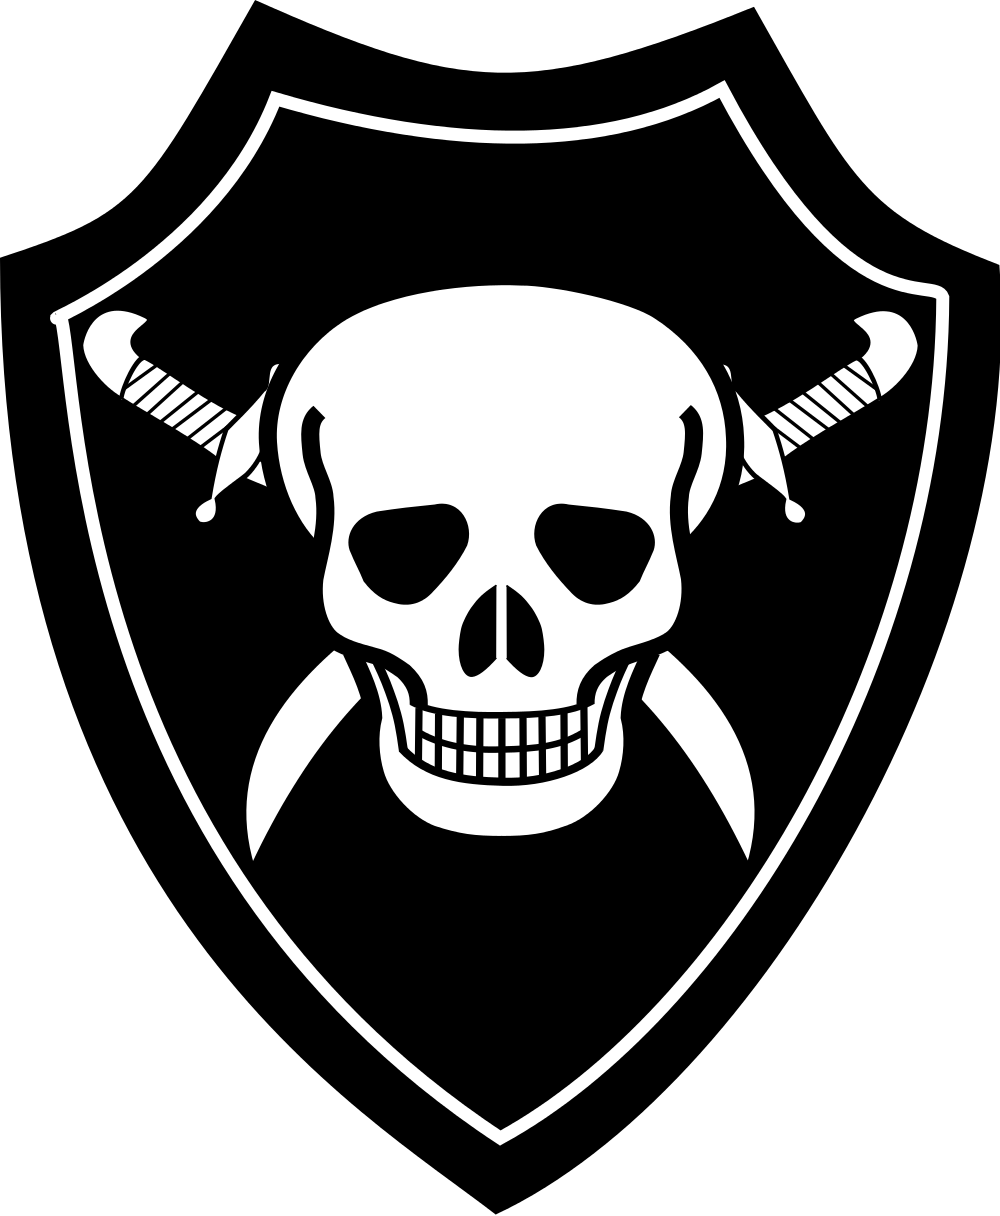 Clipart shield skull. File syrian republican guard